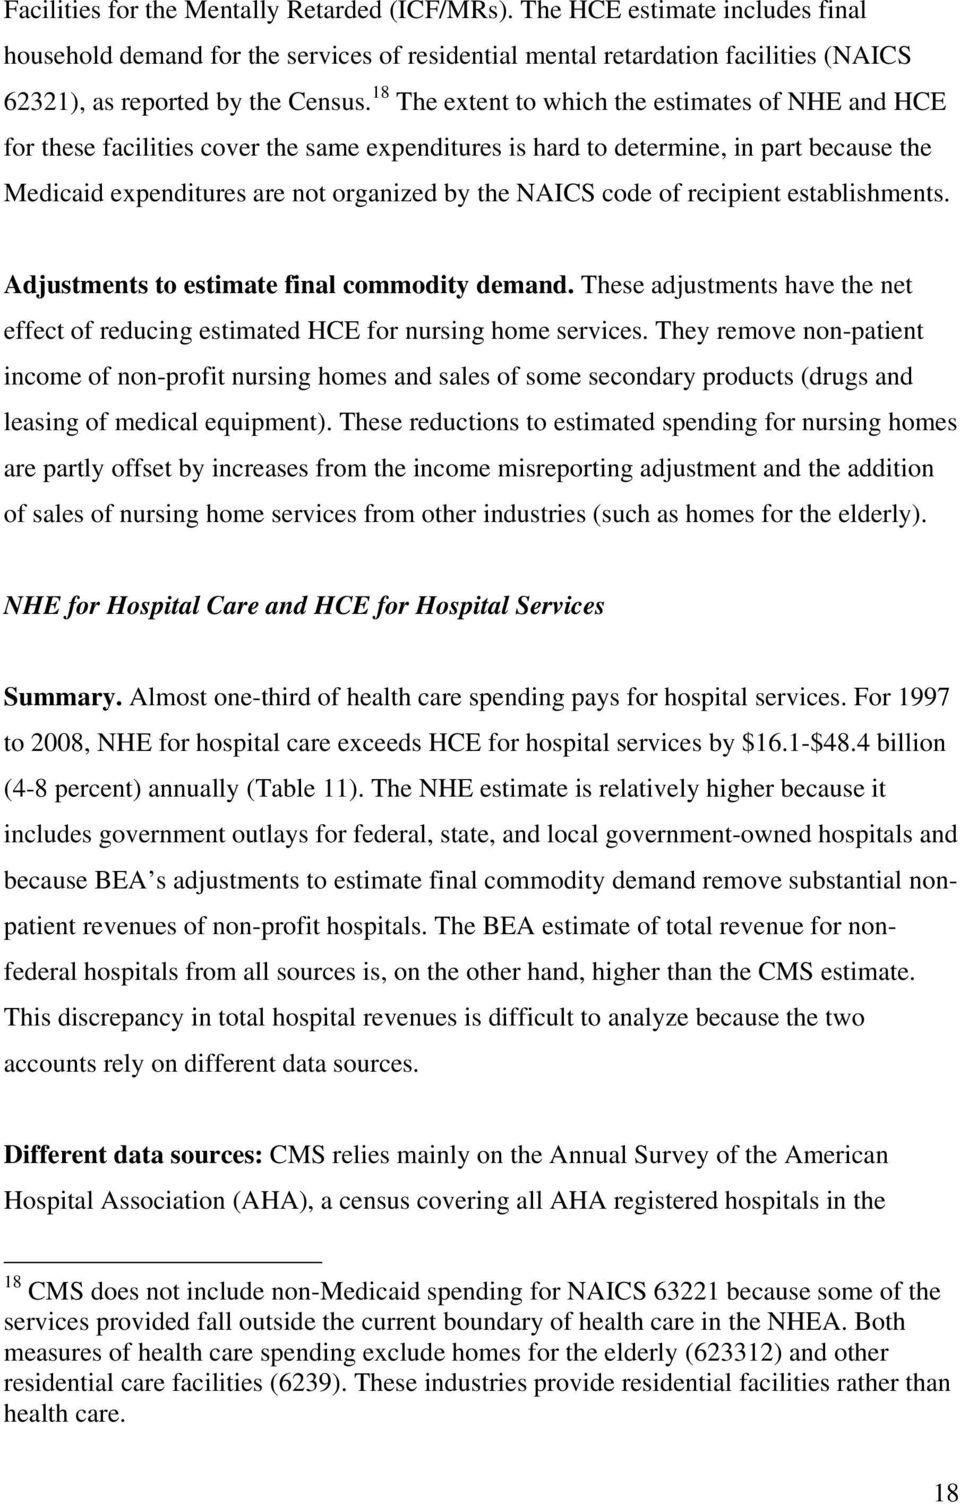 code of recipient establishments. Adjustments to estimate final commodity demand. These adjustments have the net effect of reducing estimated HCE for nursing home services.